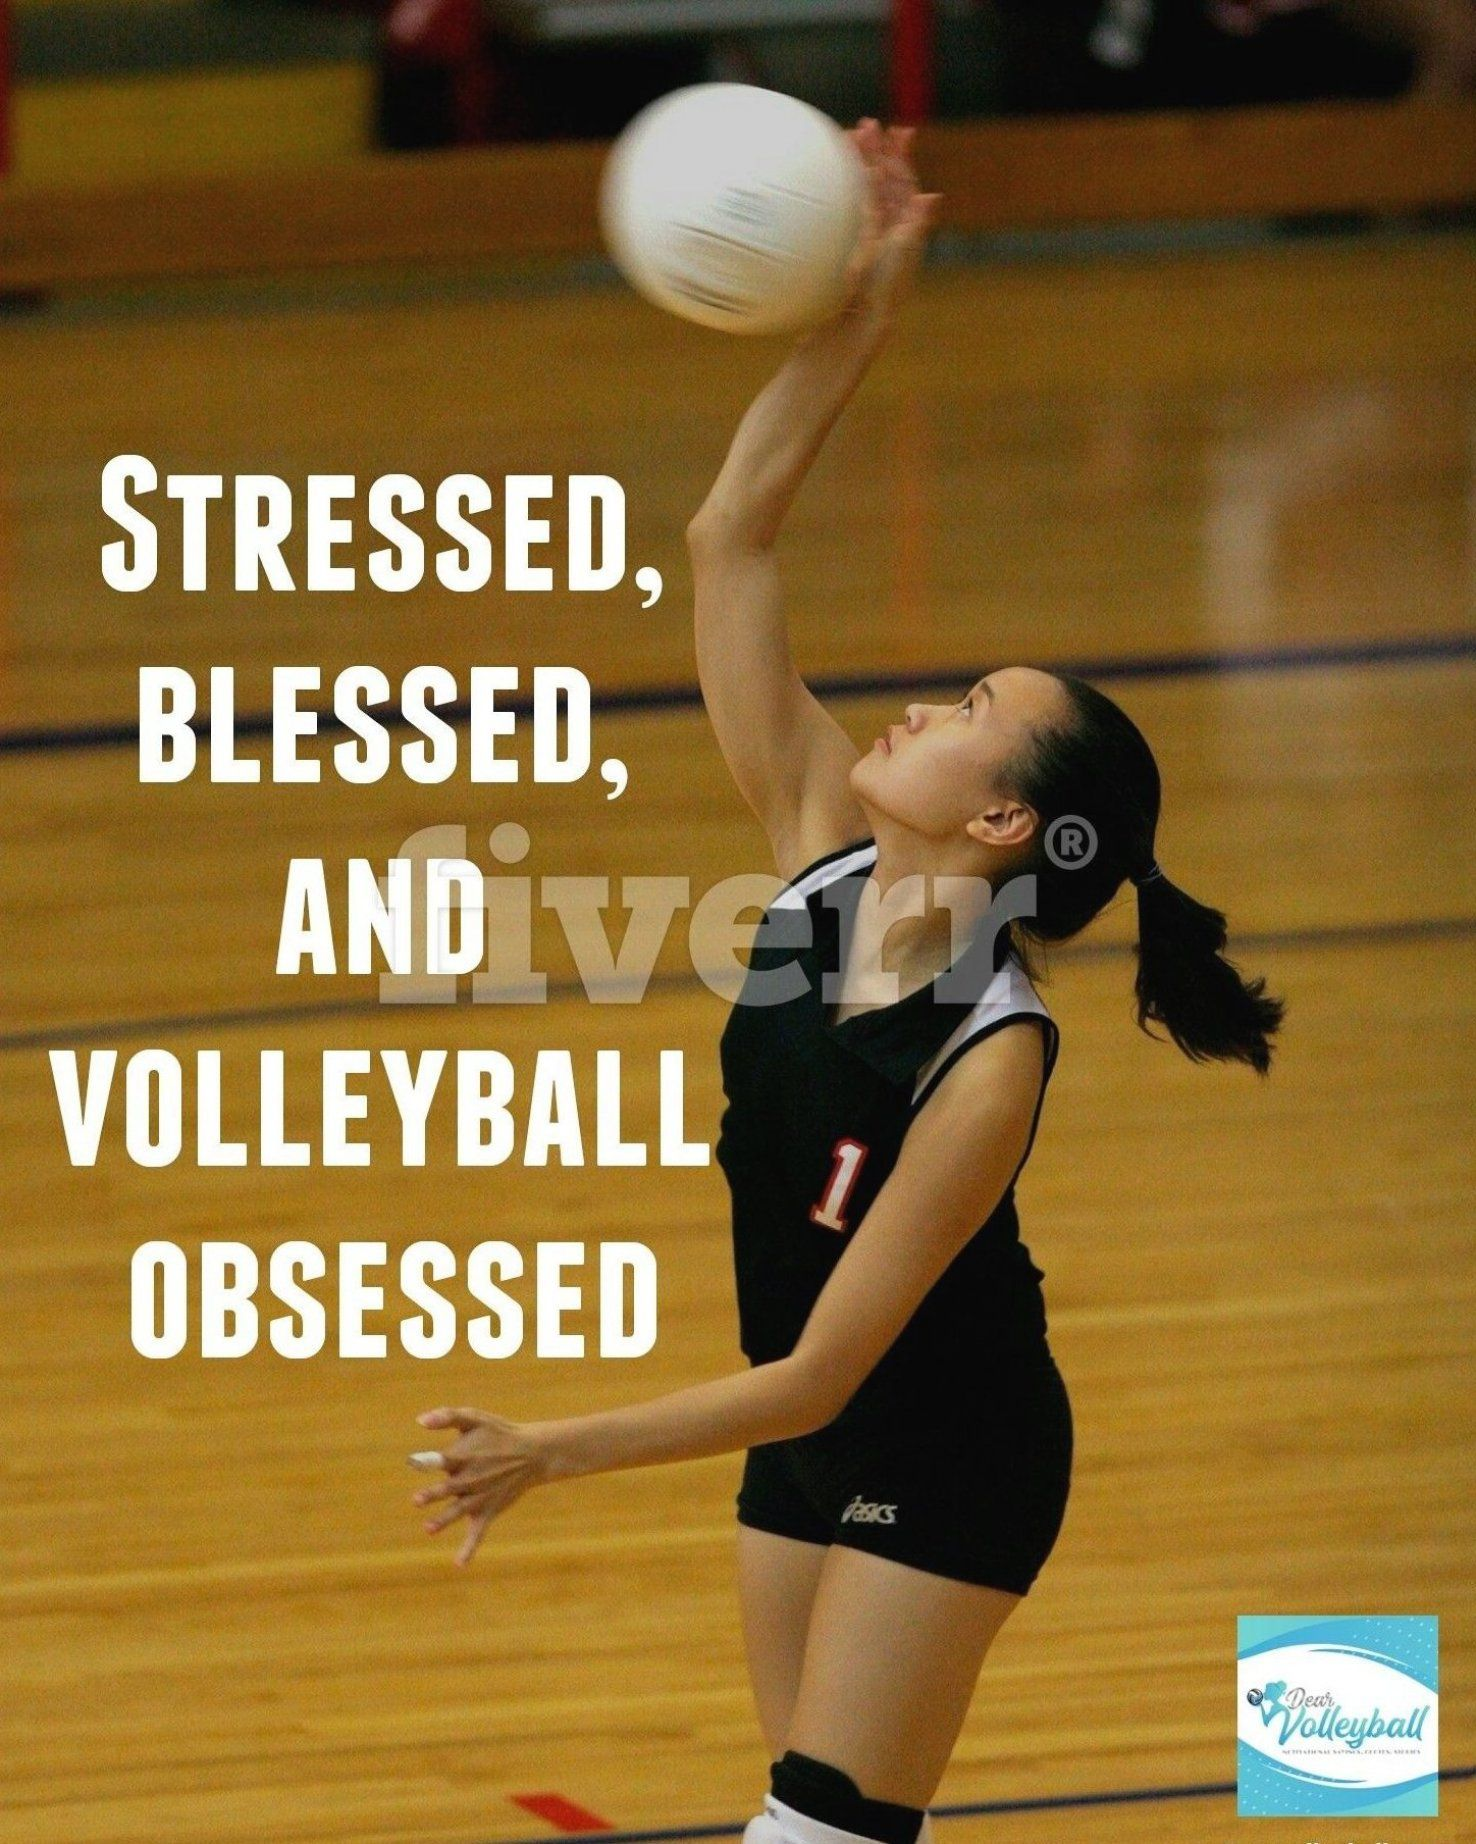 75 Volleyball Motivational Quotes And Images That Inspire Success In 2020 Volleyball Motivation Inspirational Volleyball Quotes Volleyball Humor